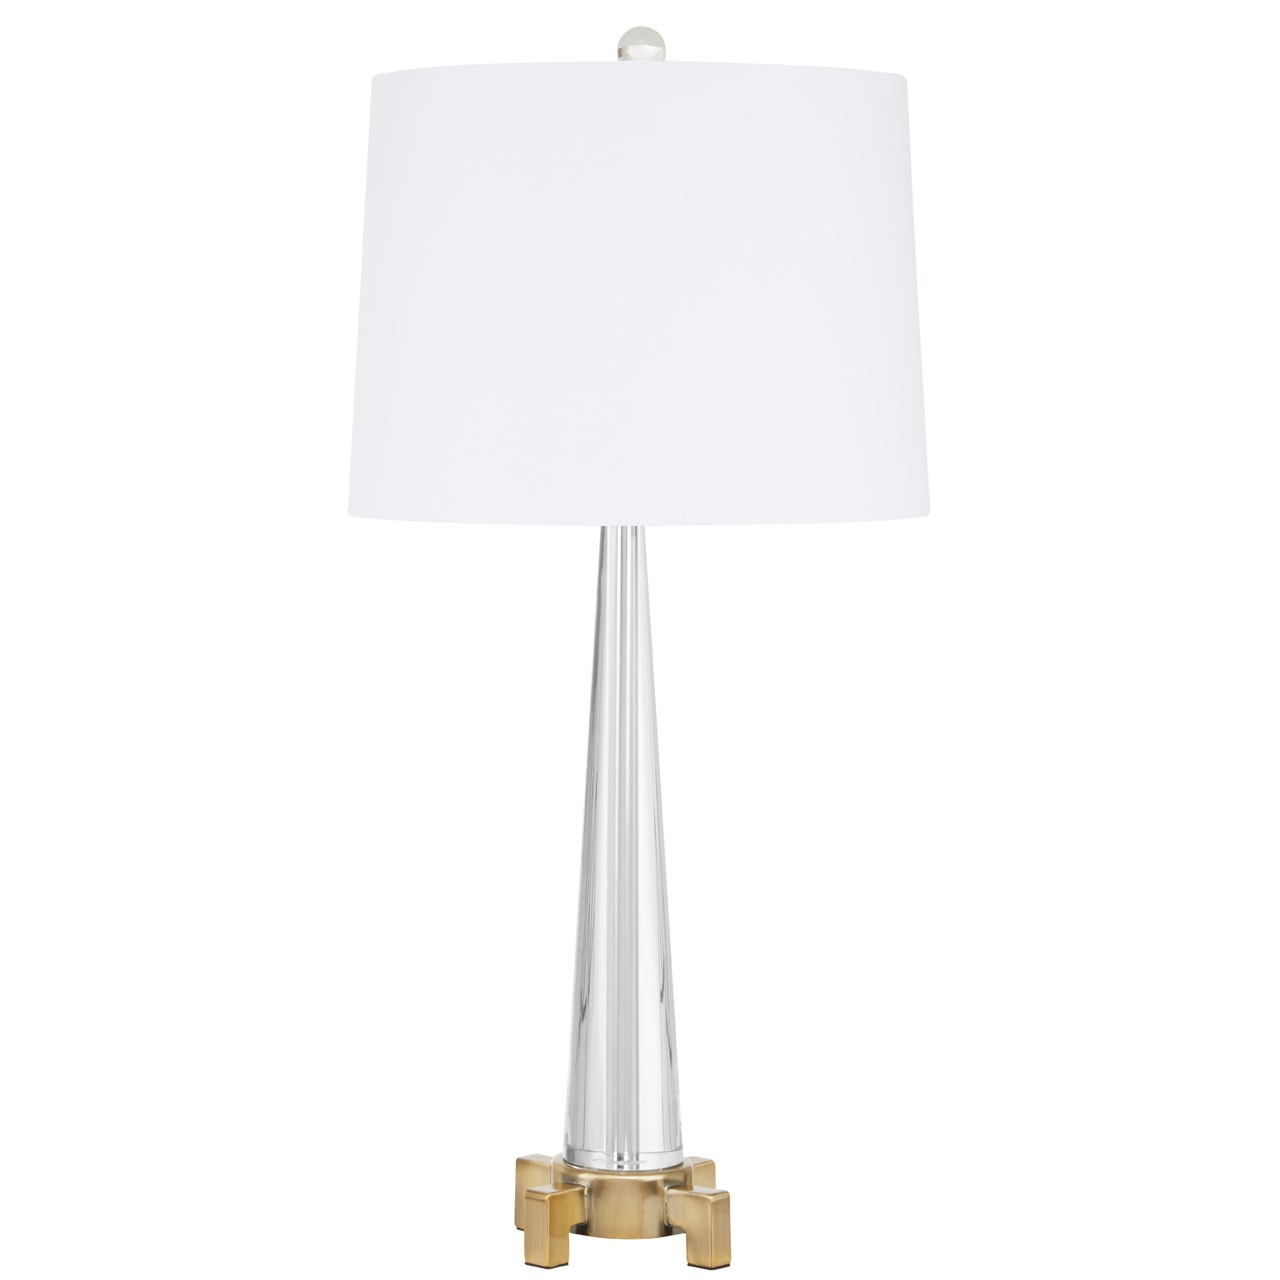 Hania Table Lamp For Home Living